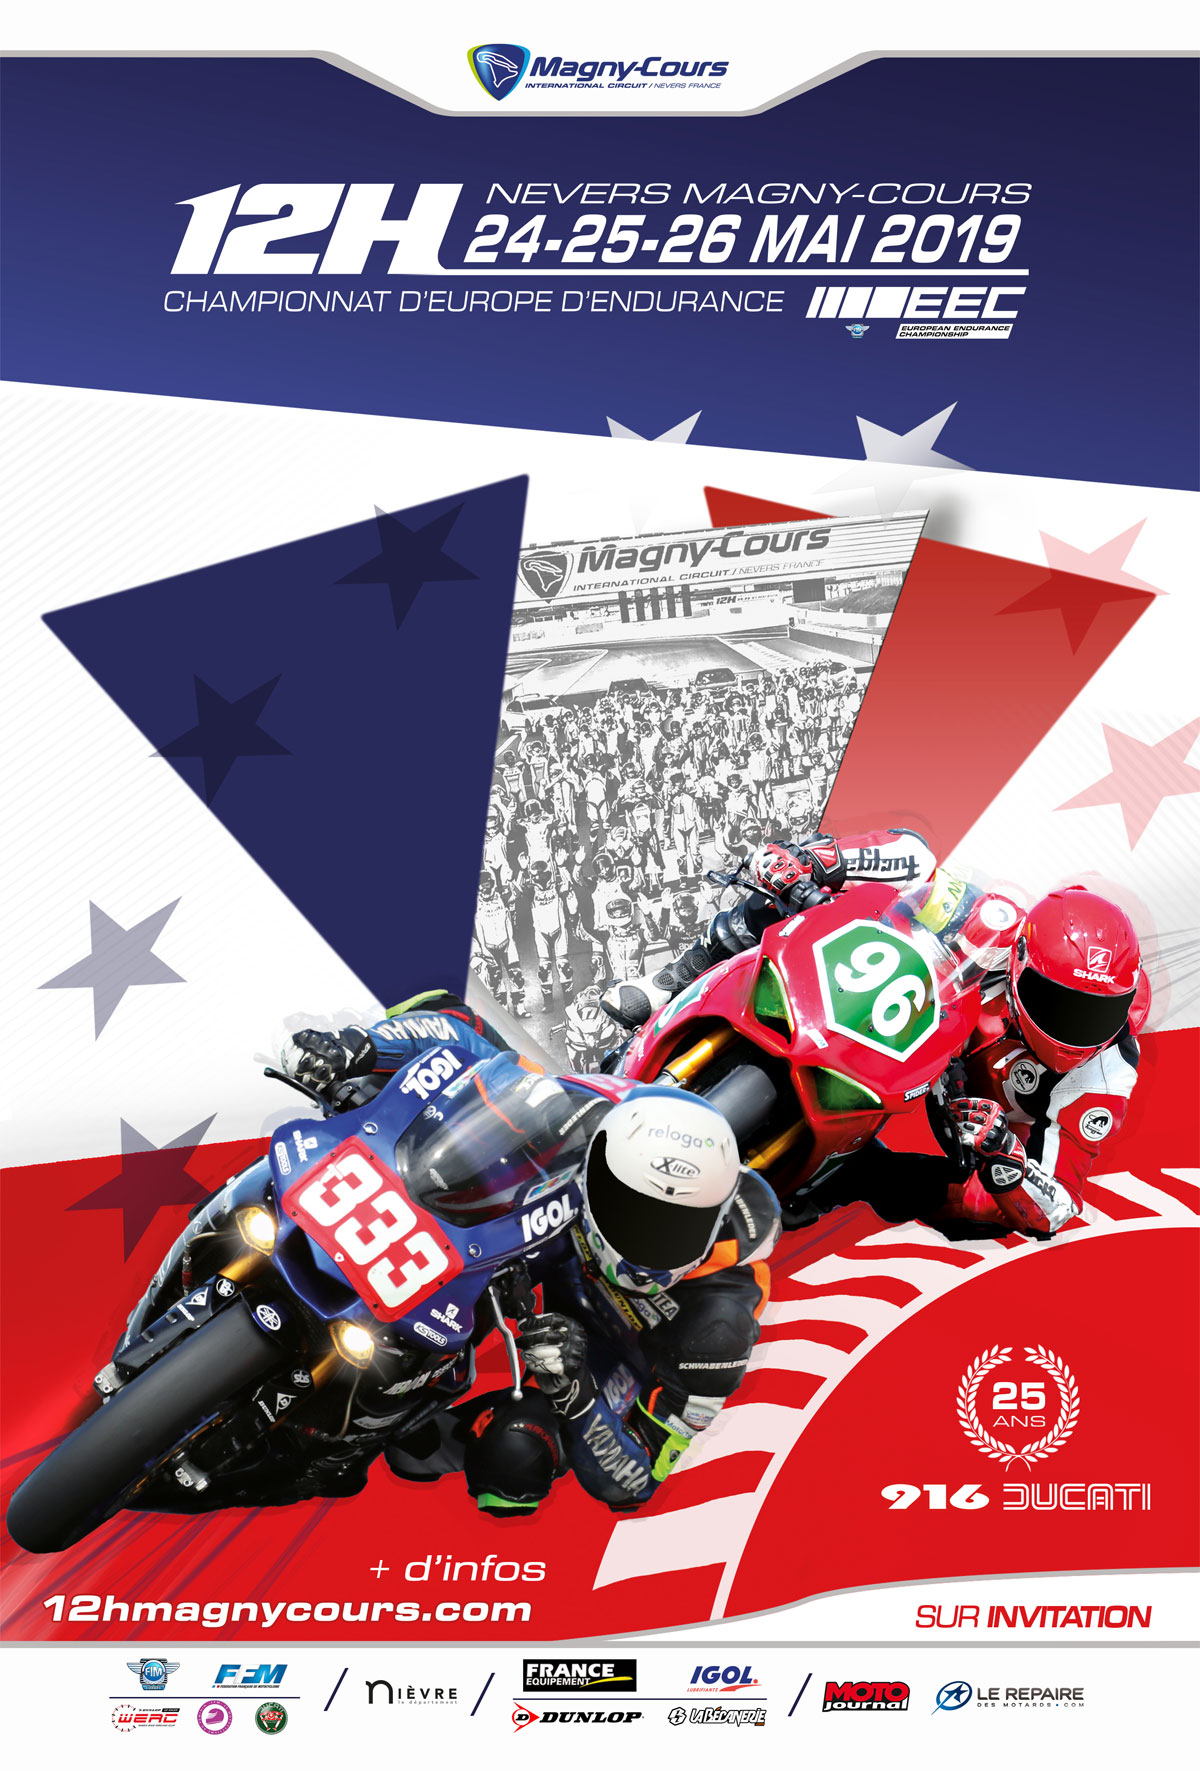 Calendrier Magny Cours 2020.5e Edition Des 12h Nevers Magny Cours